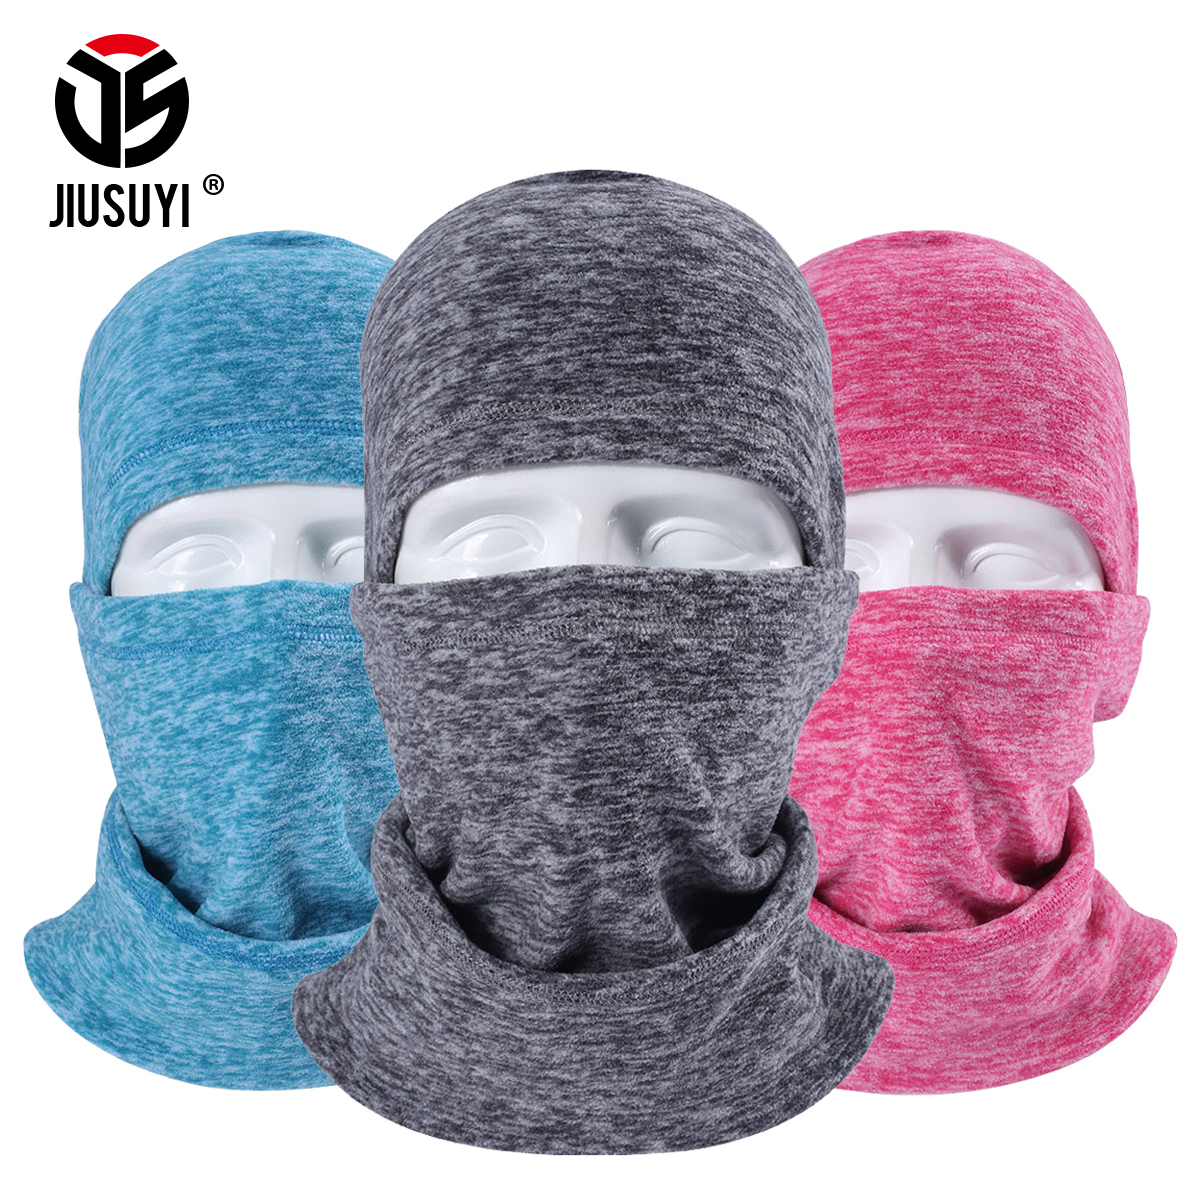 Wool Fabric Fleece Thermal Winter Balaclava Keep Neck Warmer Full Face Mask Bicycle Snowboard Knit Adjustable With Drawstring